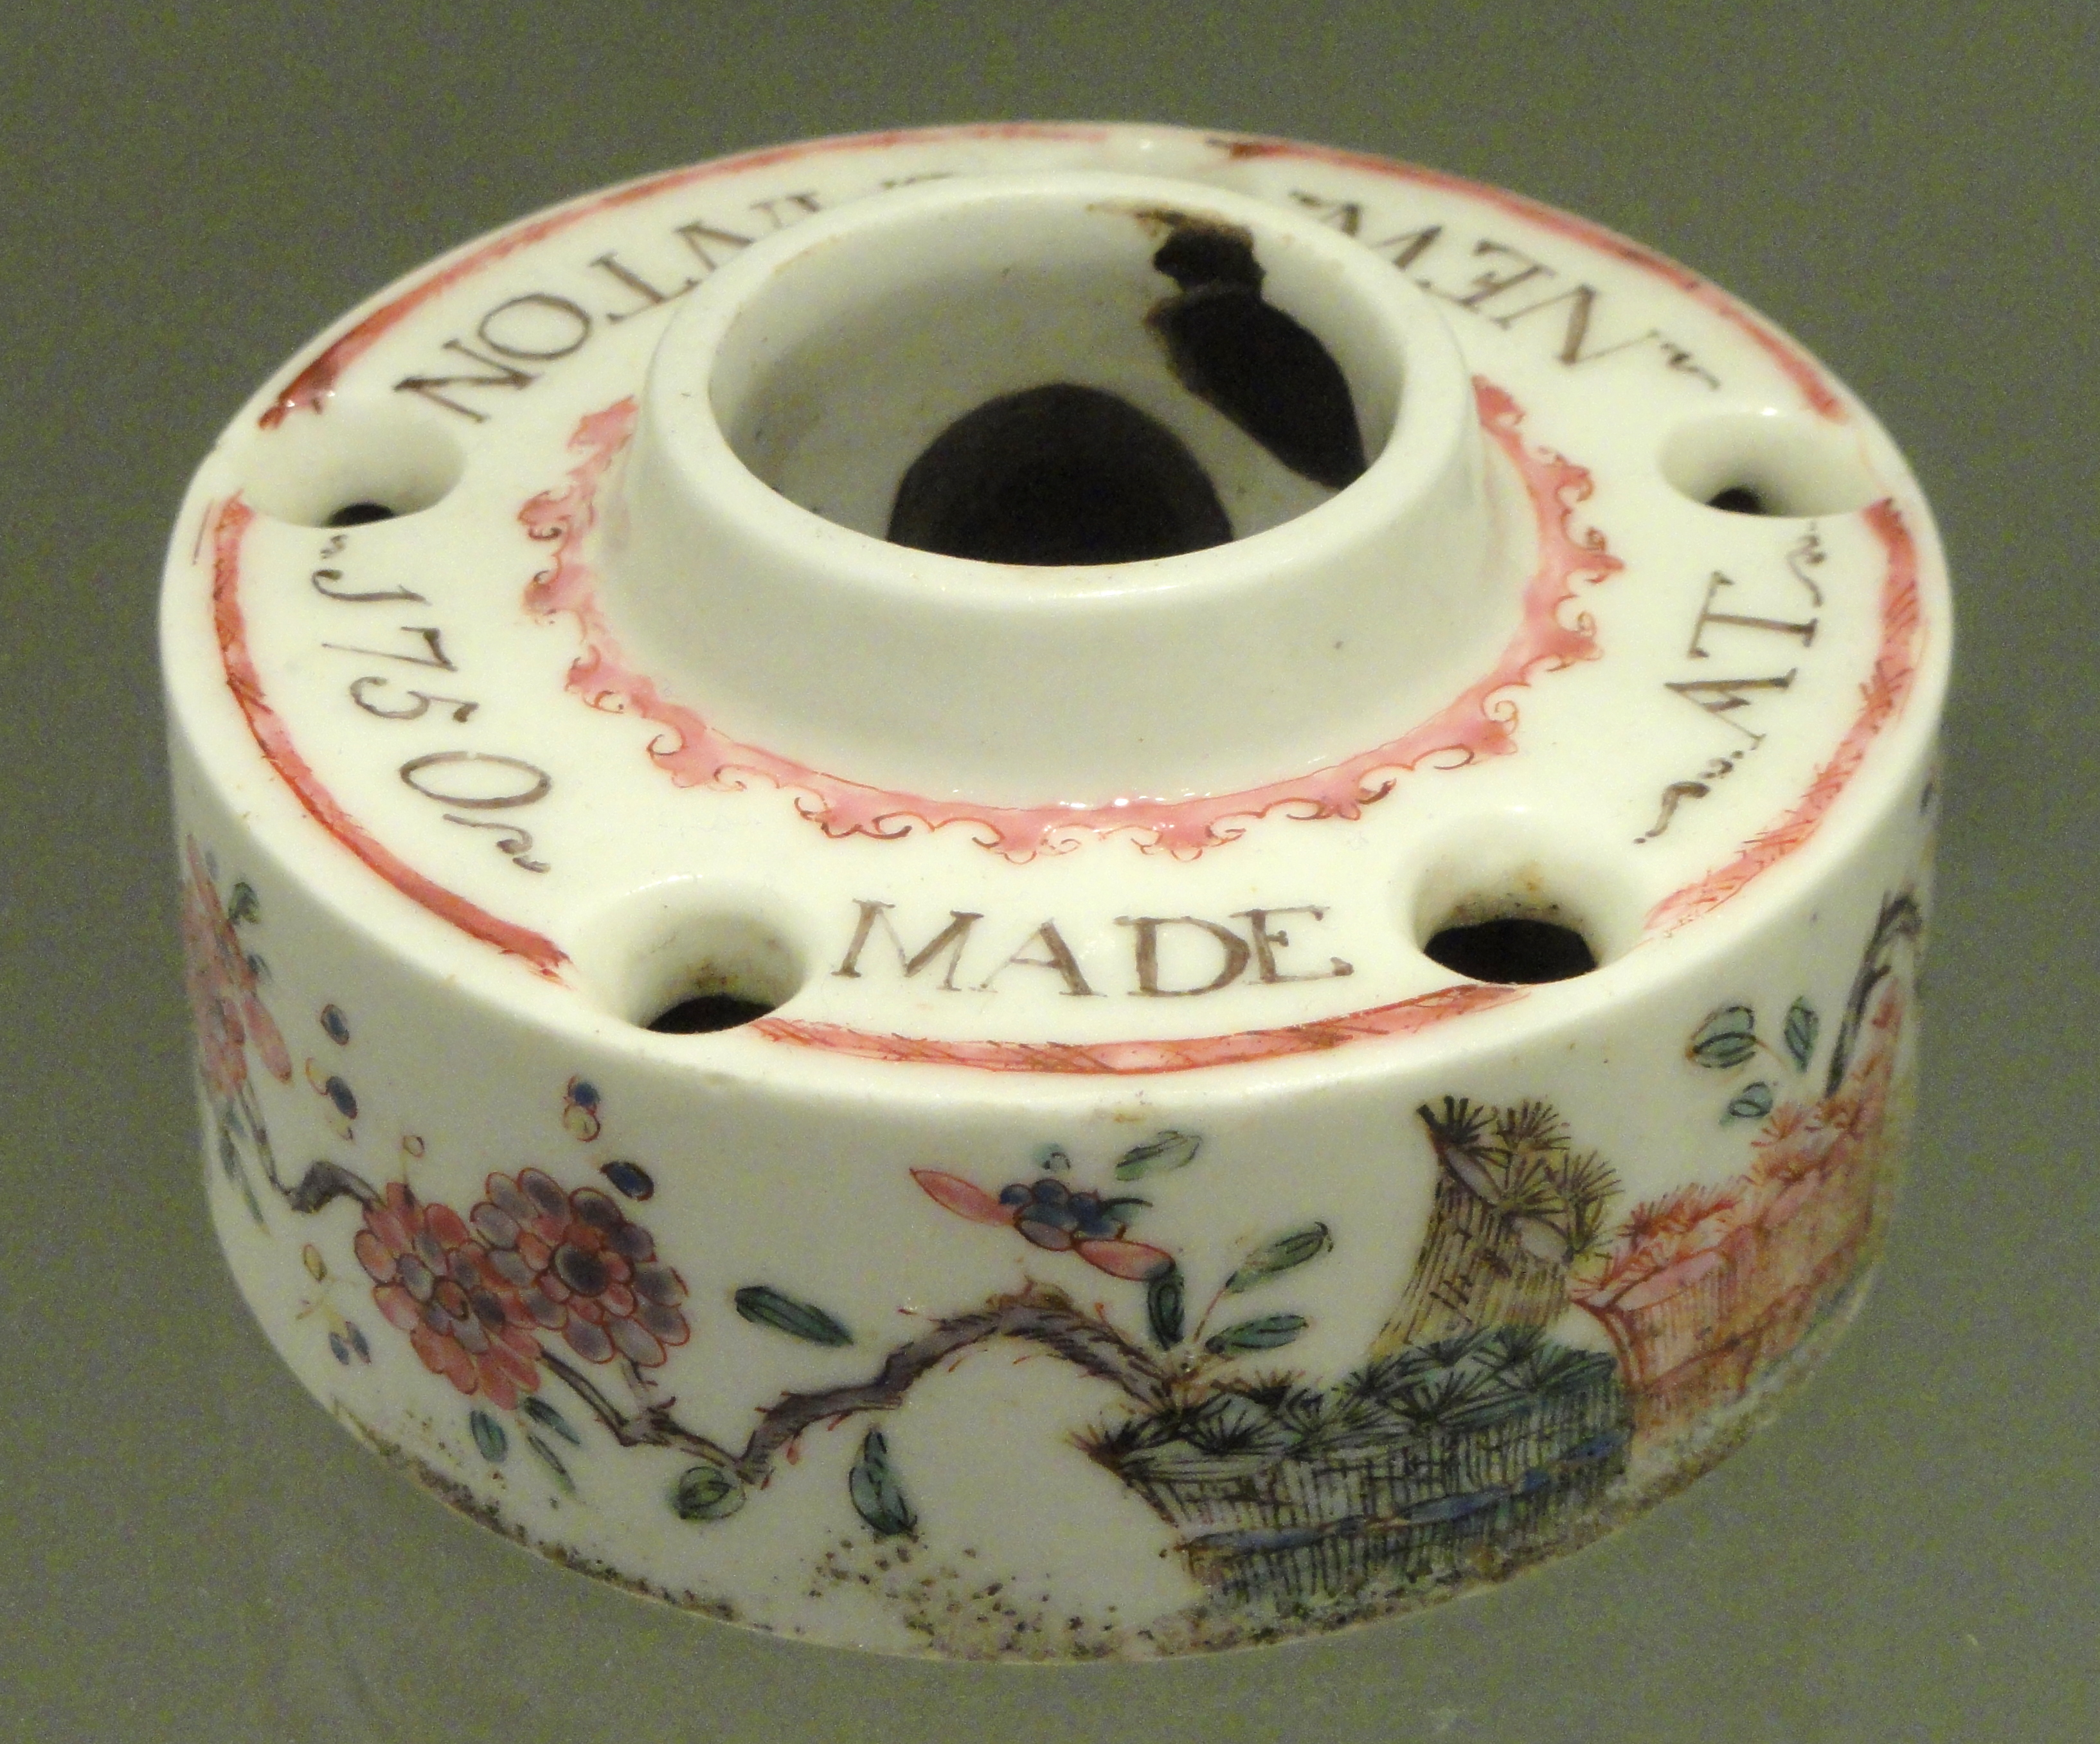 File:Inkwell, dated 1750, Bow factory, soft-paste porcelain with overglaze enamels, gold